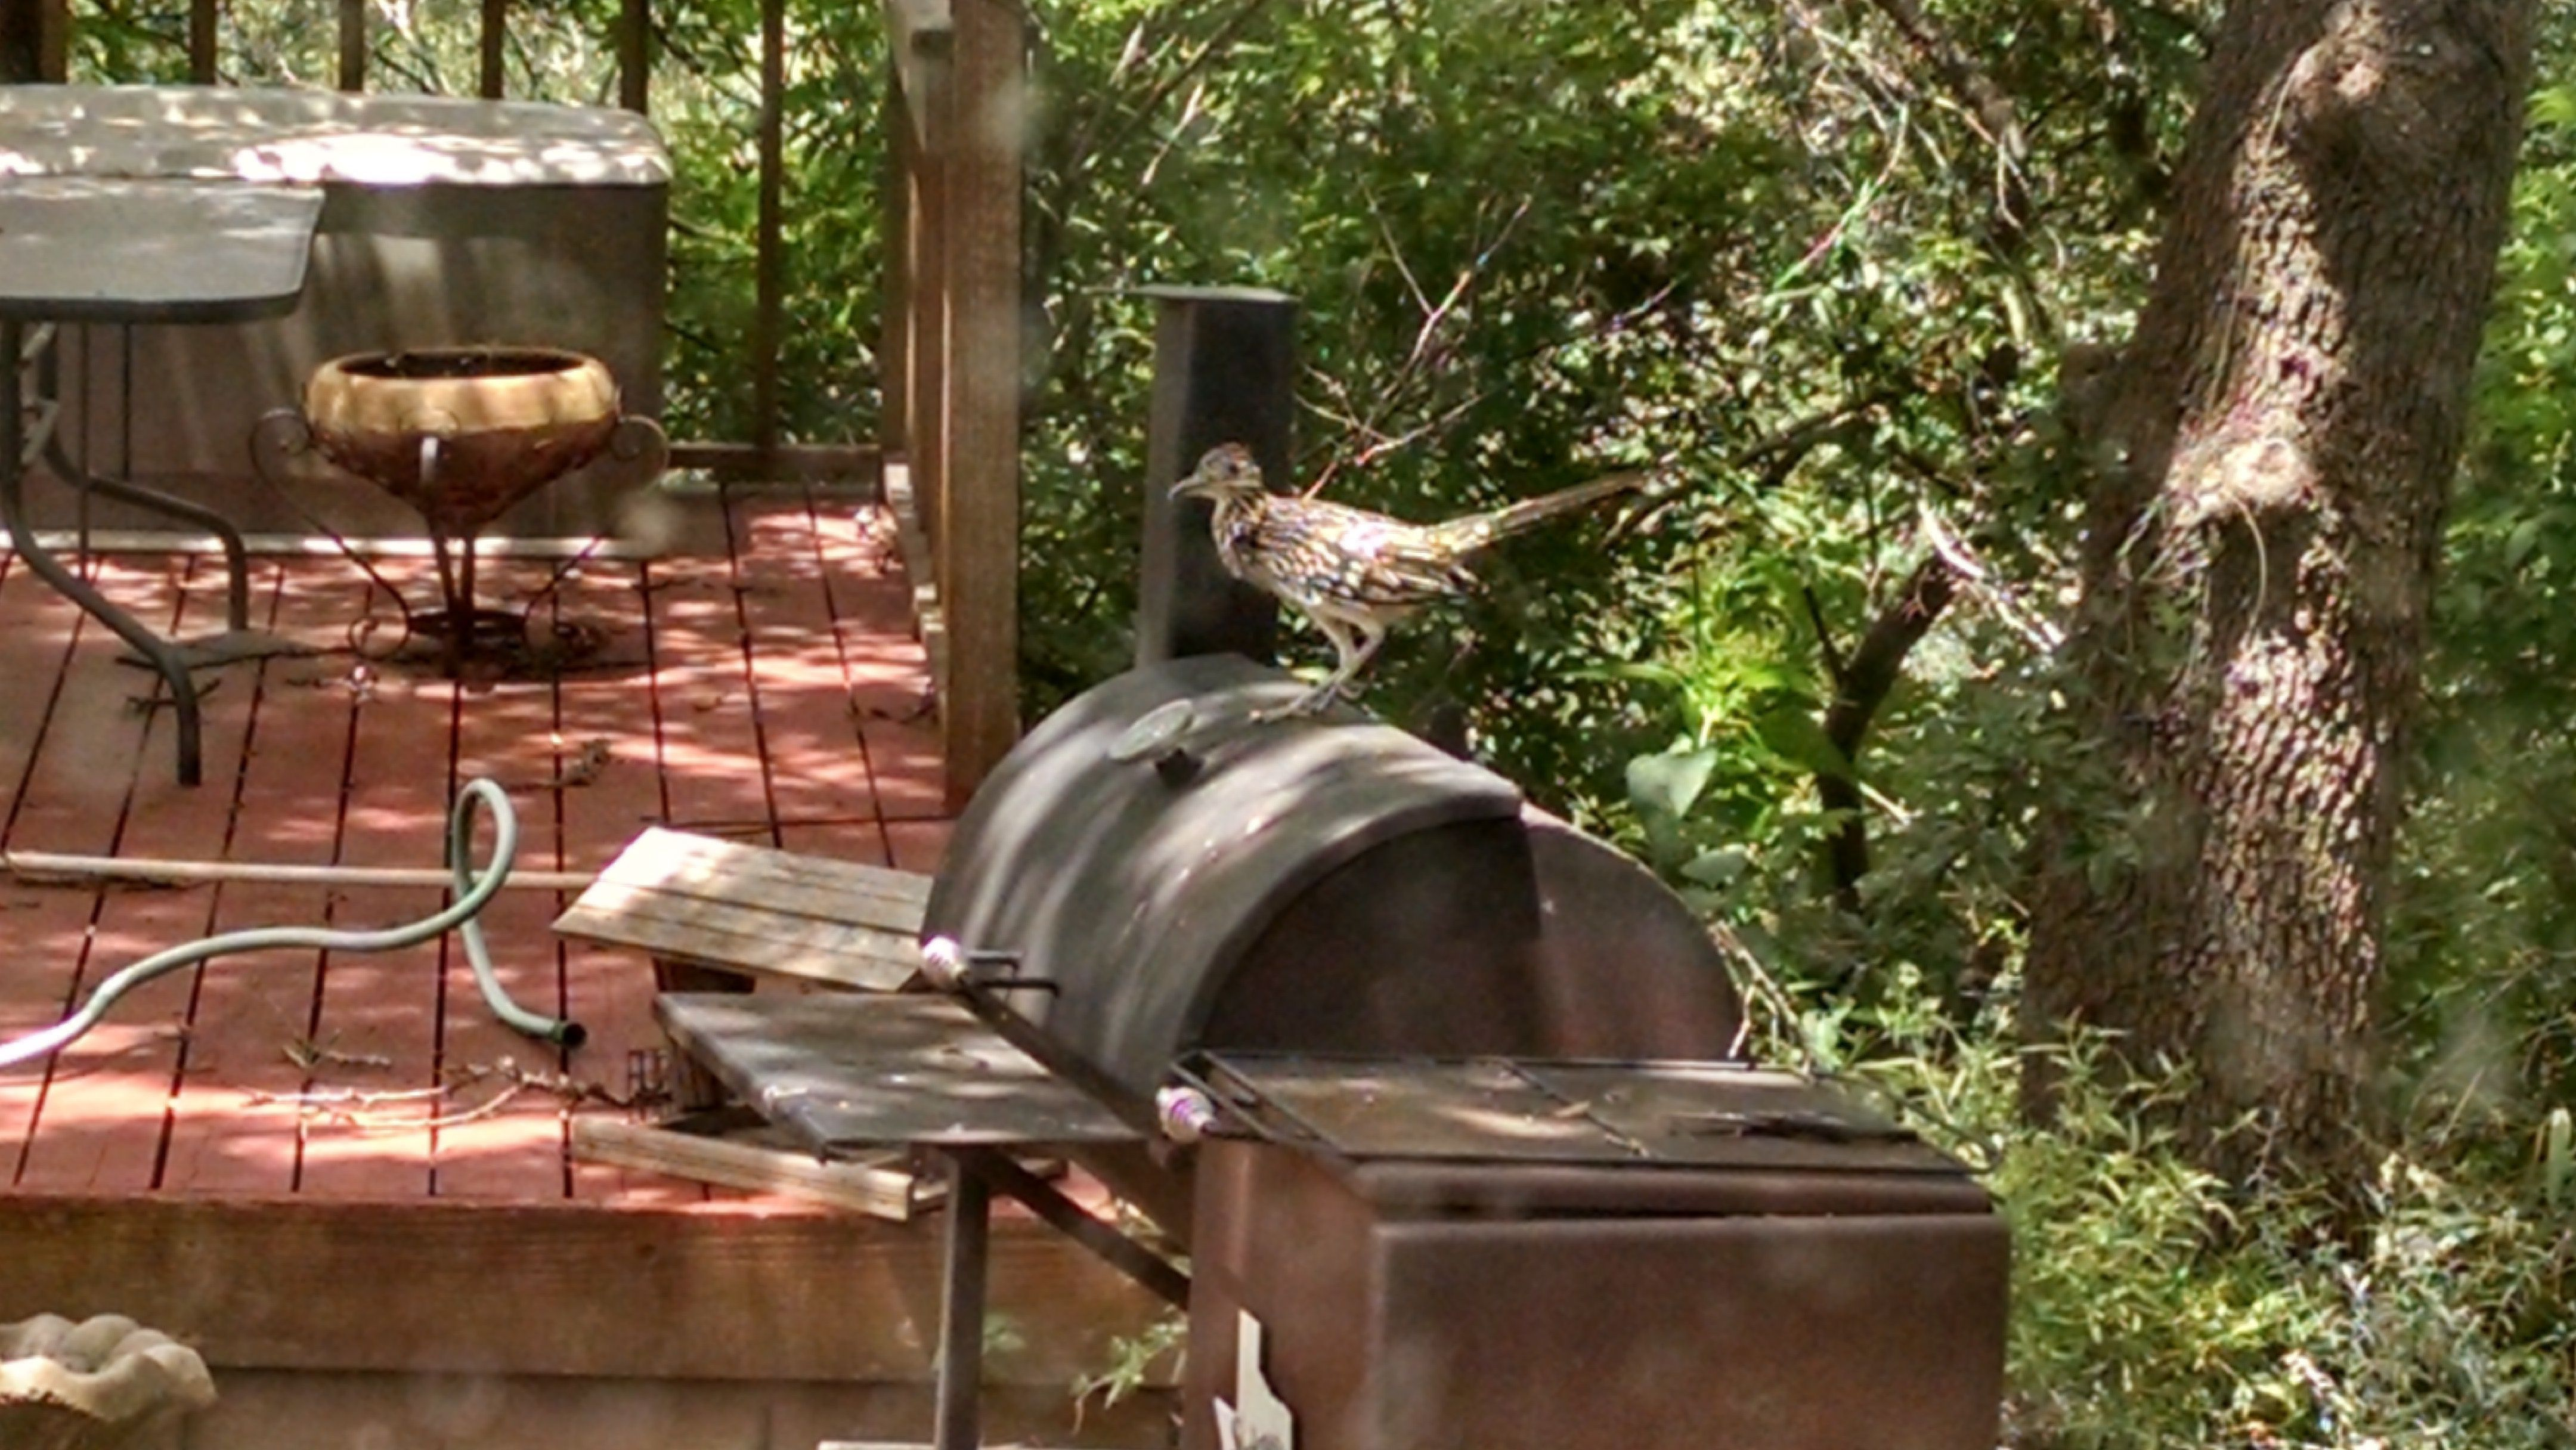 Roadrunner on grill at Scurlock Farms